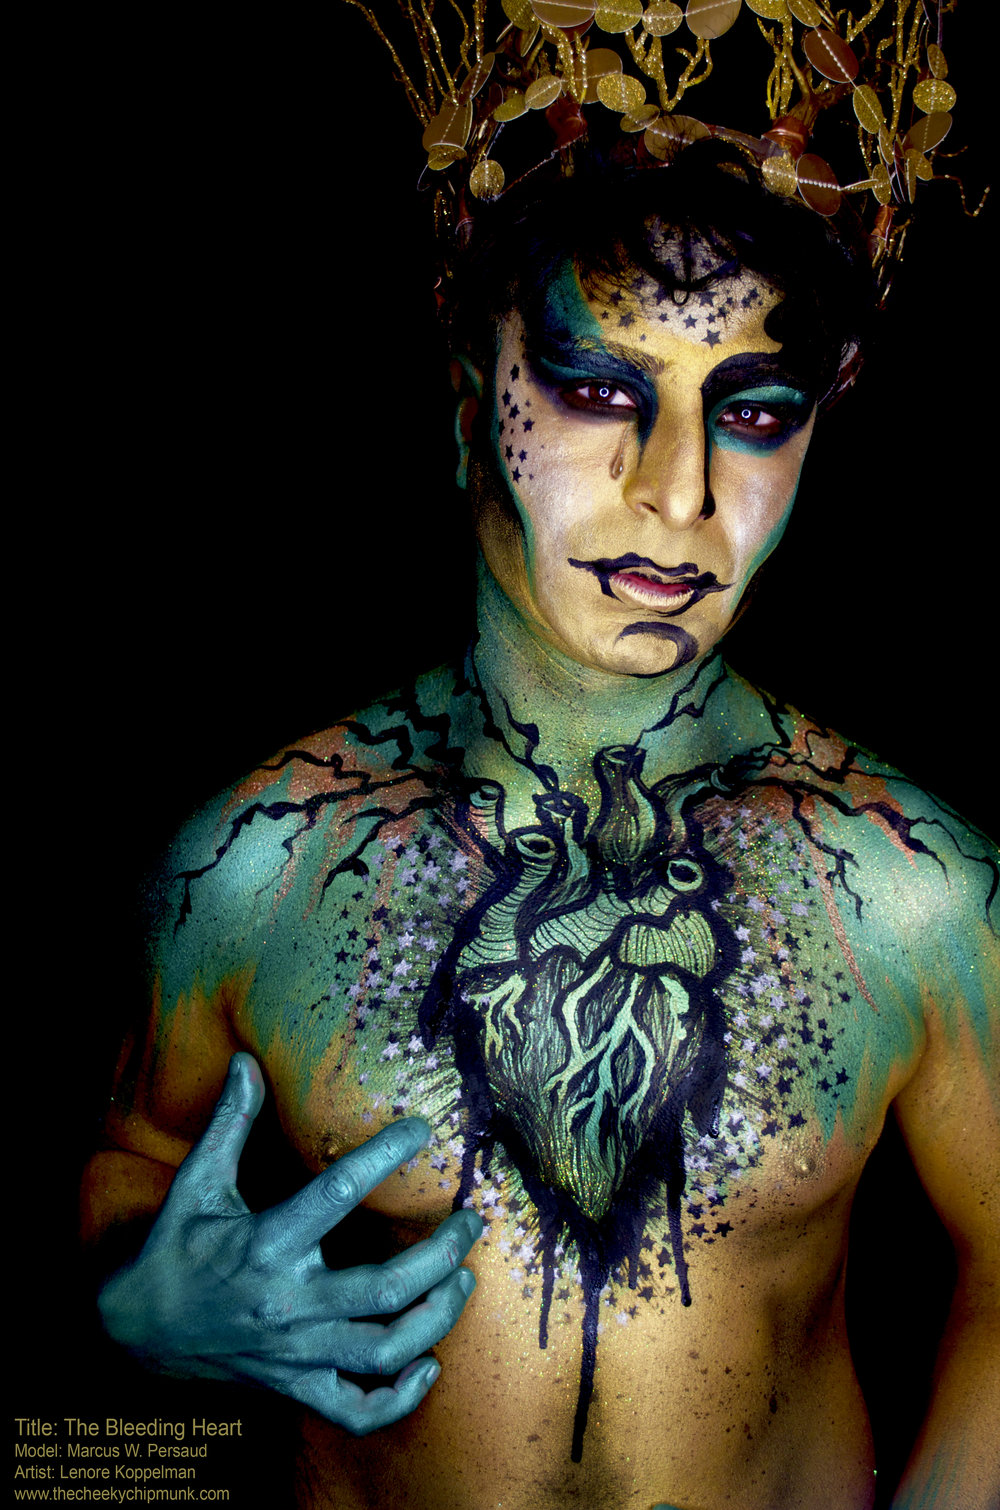 The Bleeding Heart body paint marcus persaud 2.jpg